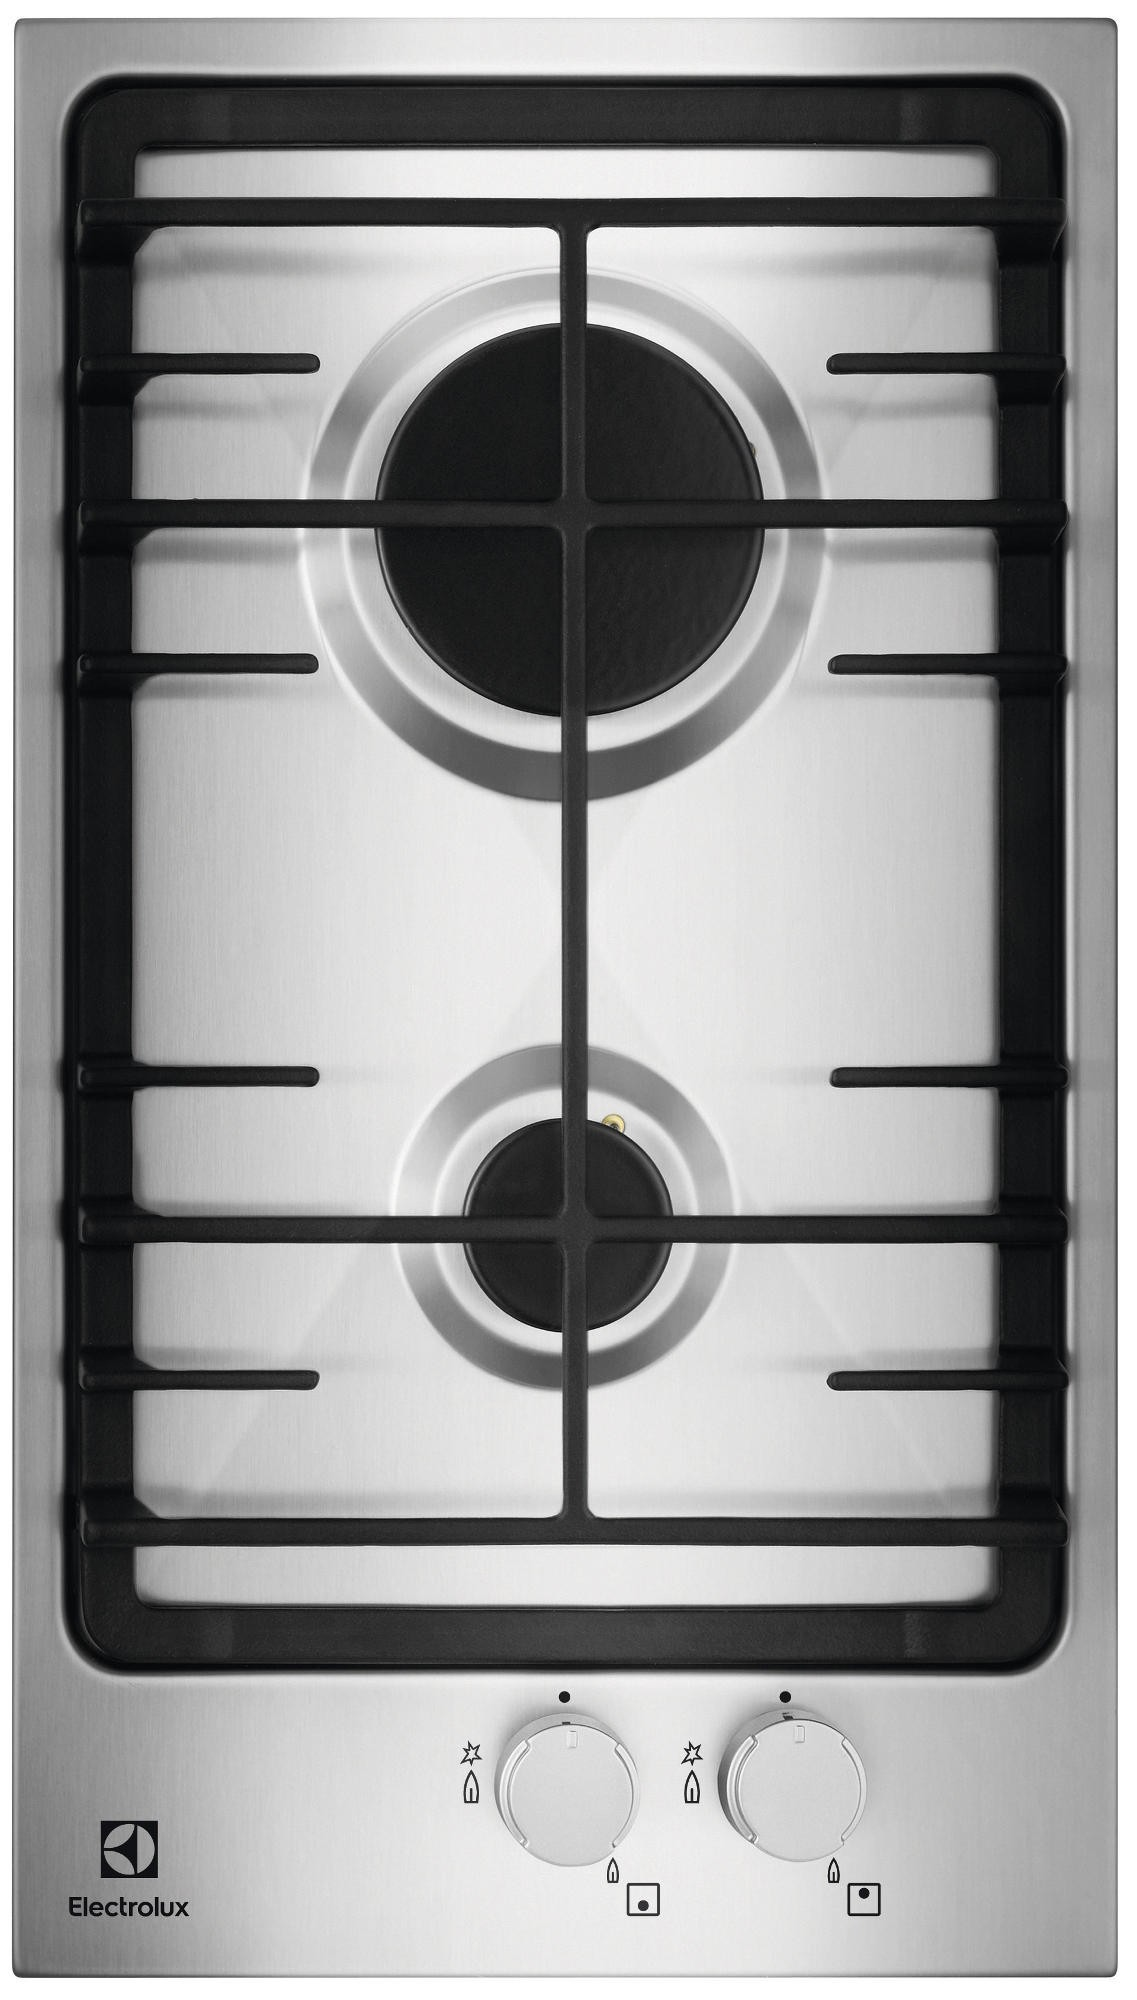 electrolux arthur martin domino gaz inox egg3322nvx achat plaque de cuisson gaz. Black Bedroom Furniture Sets. Home Design Ideas